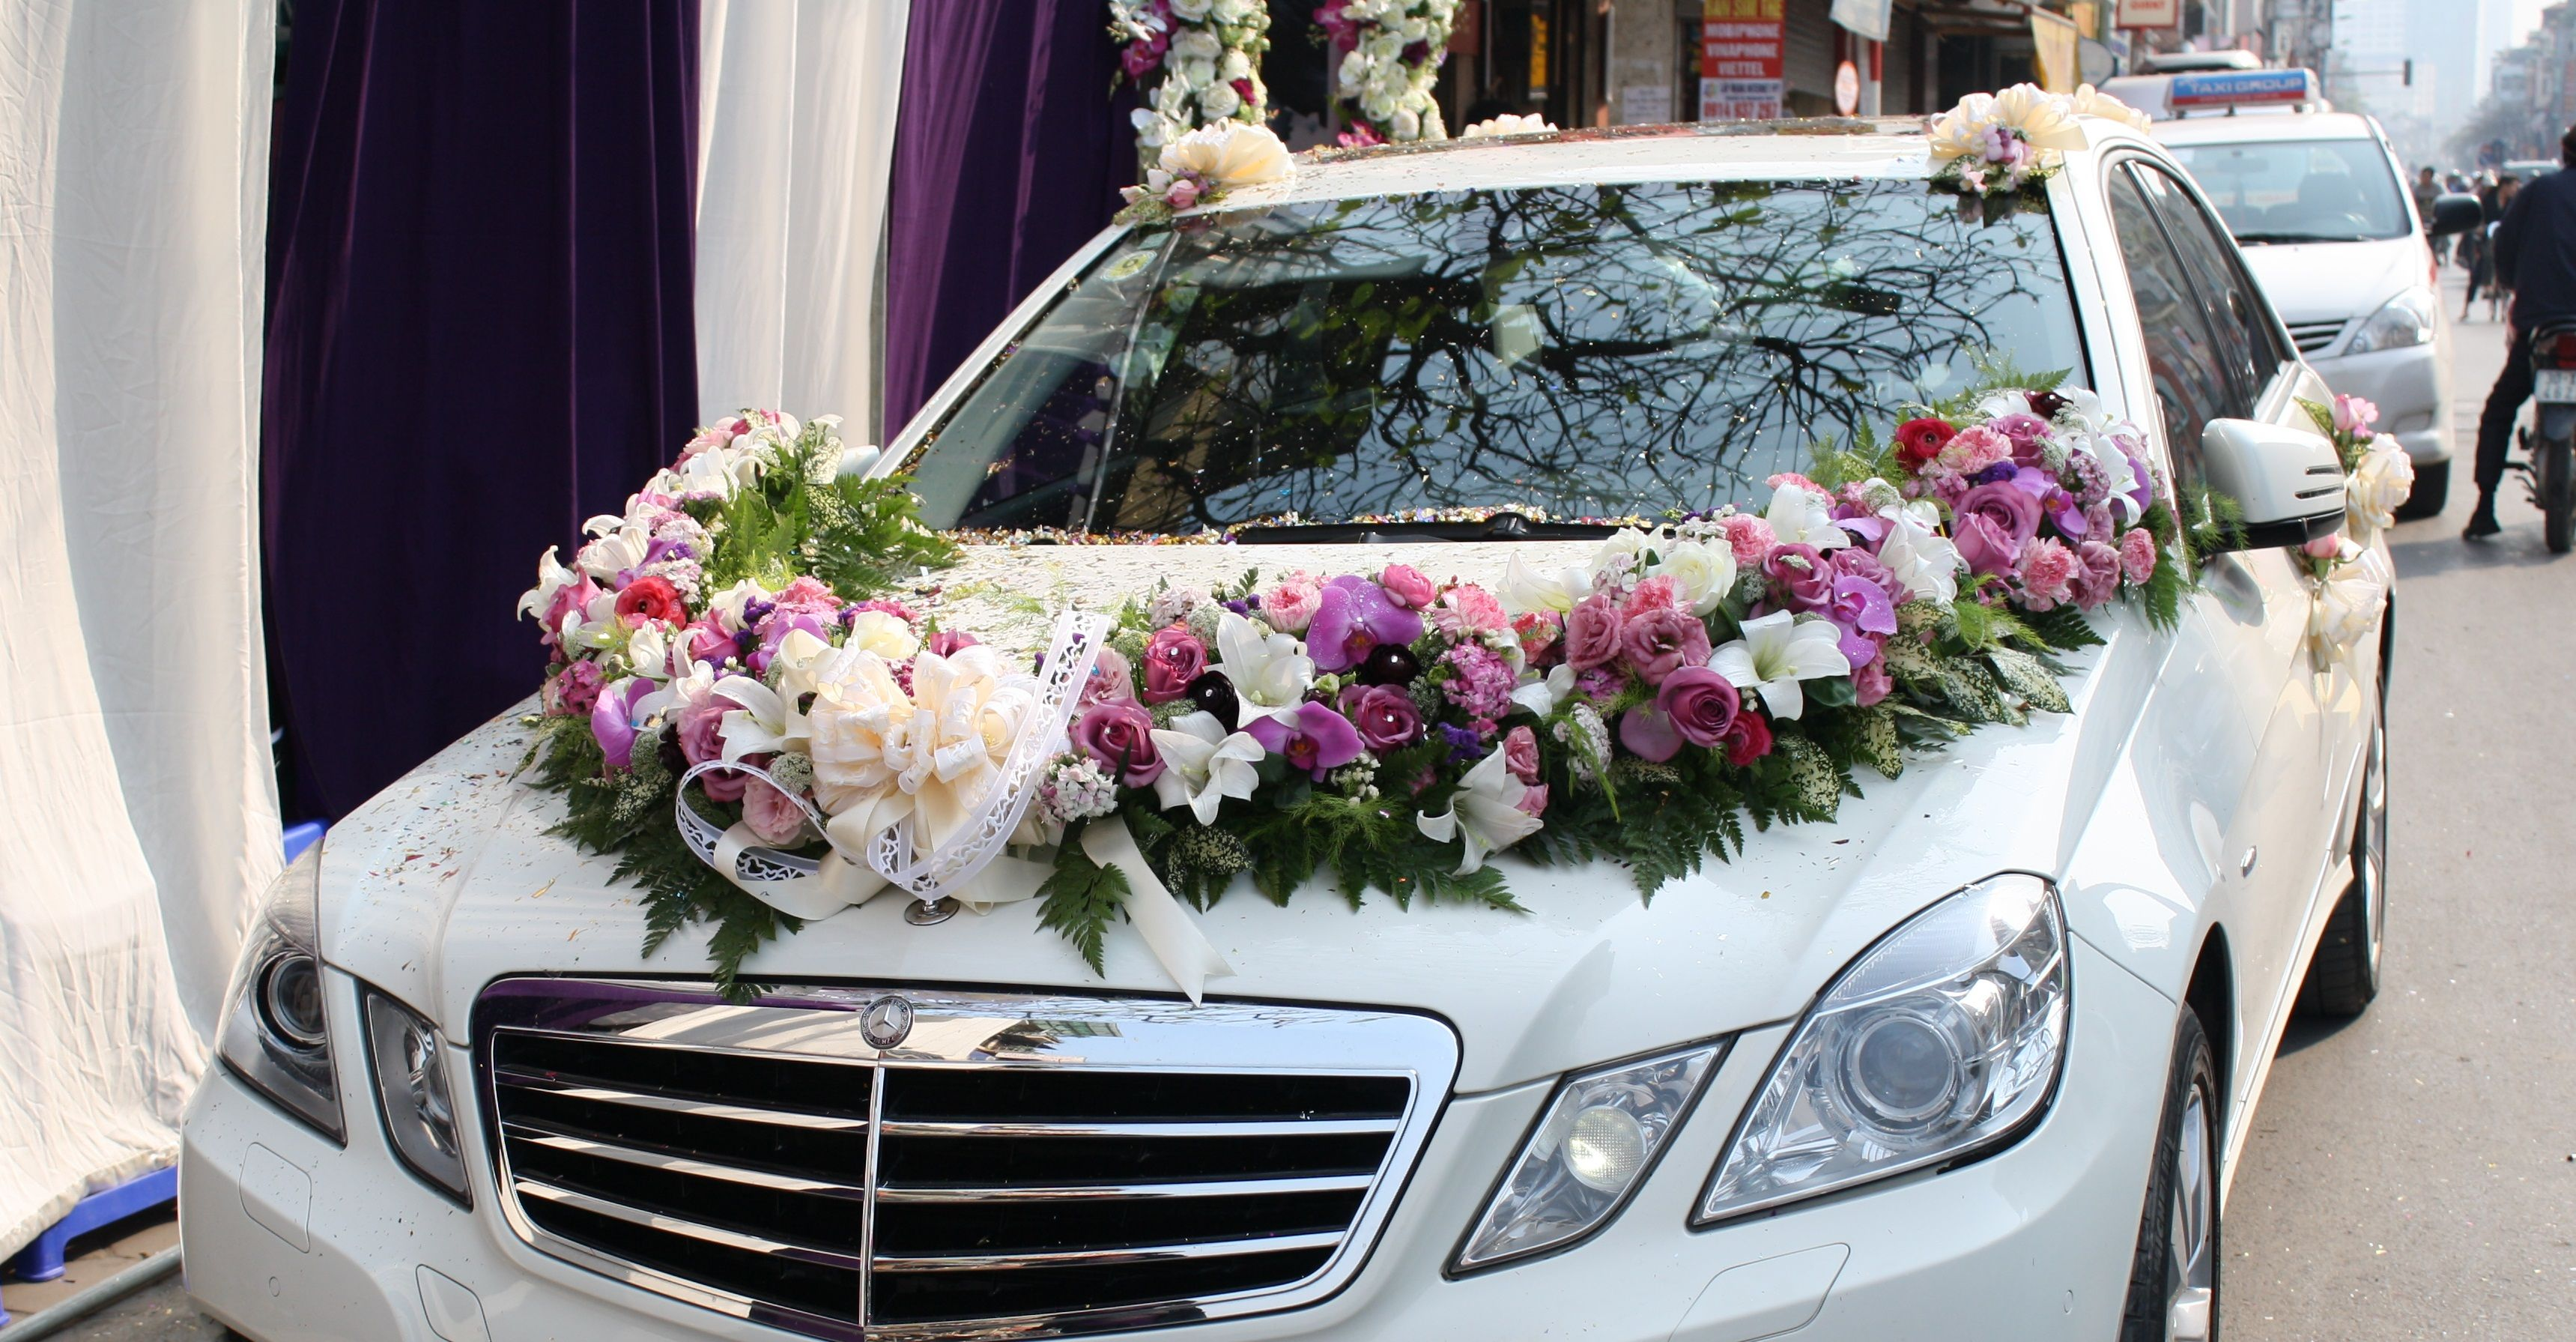 Wedding decorations for car  facebooktruyenthongt  Wedding Inspiration  Pinterest